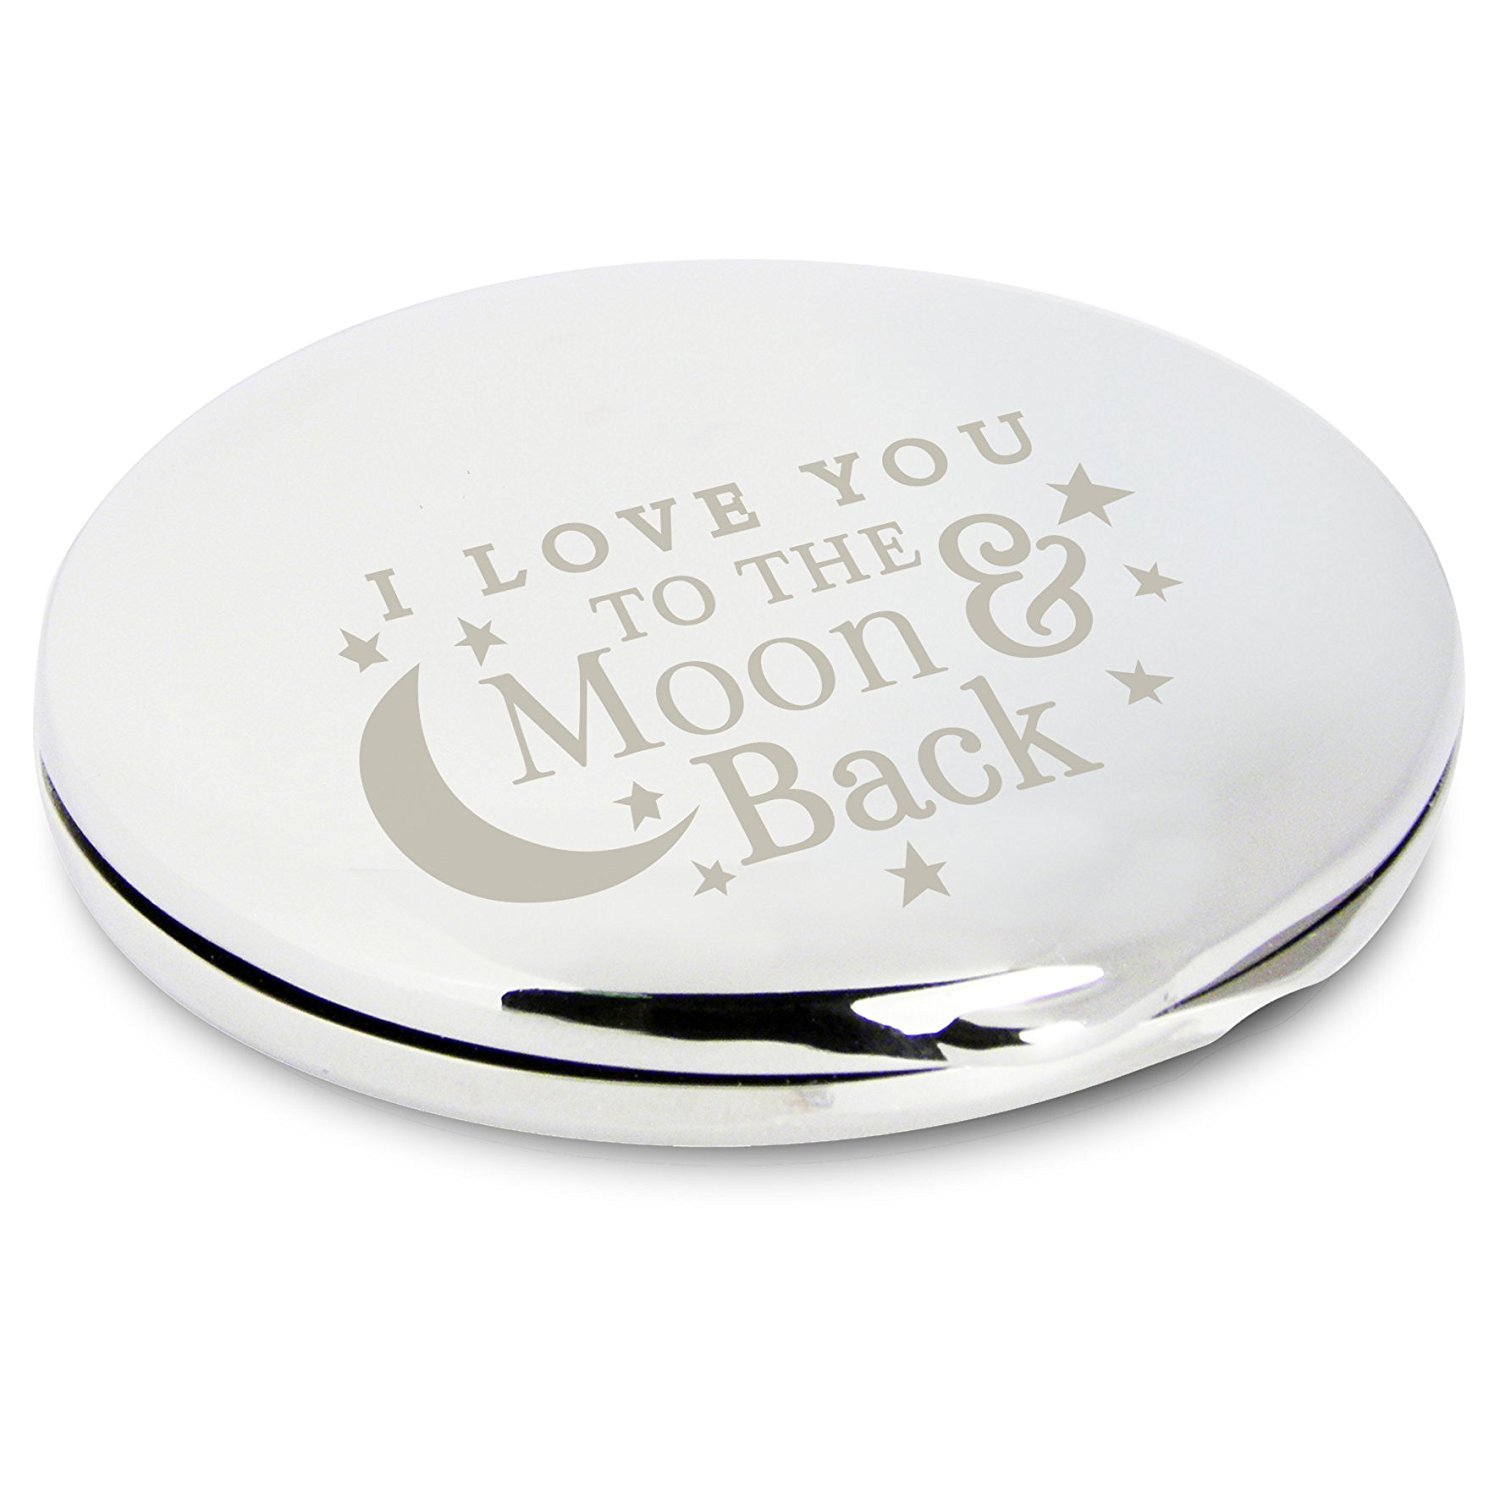 I LOVE YOU TO THE MOON AND BACK ROMANTIC Silver Engraved COMPACT MIRROR for my Girlfriend Wife Friend Her Novelty Keepsake Gifts Presents for Valentines Day Birthday Christmas Mothers Day Wedding Anniversary Mum Mummy Chris Bag of Goodies